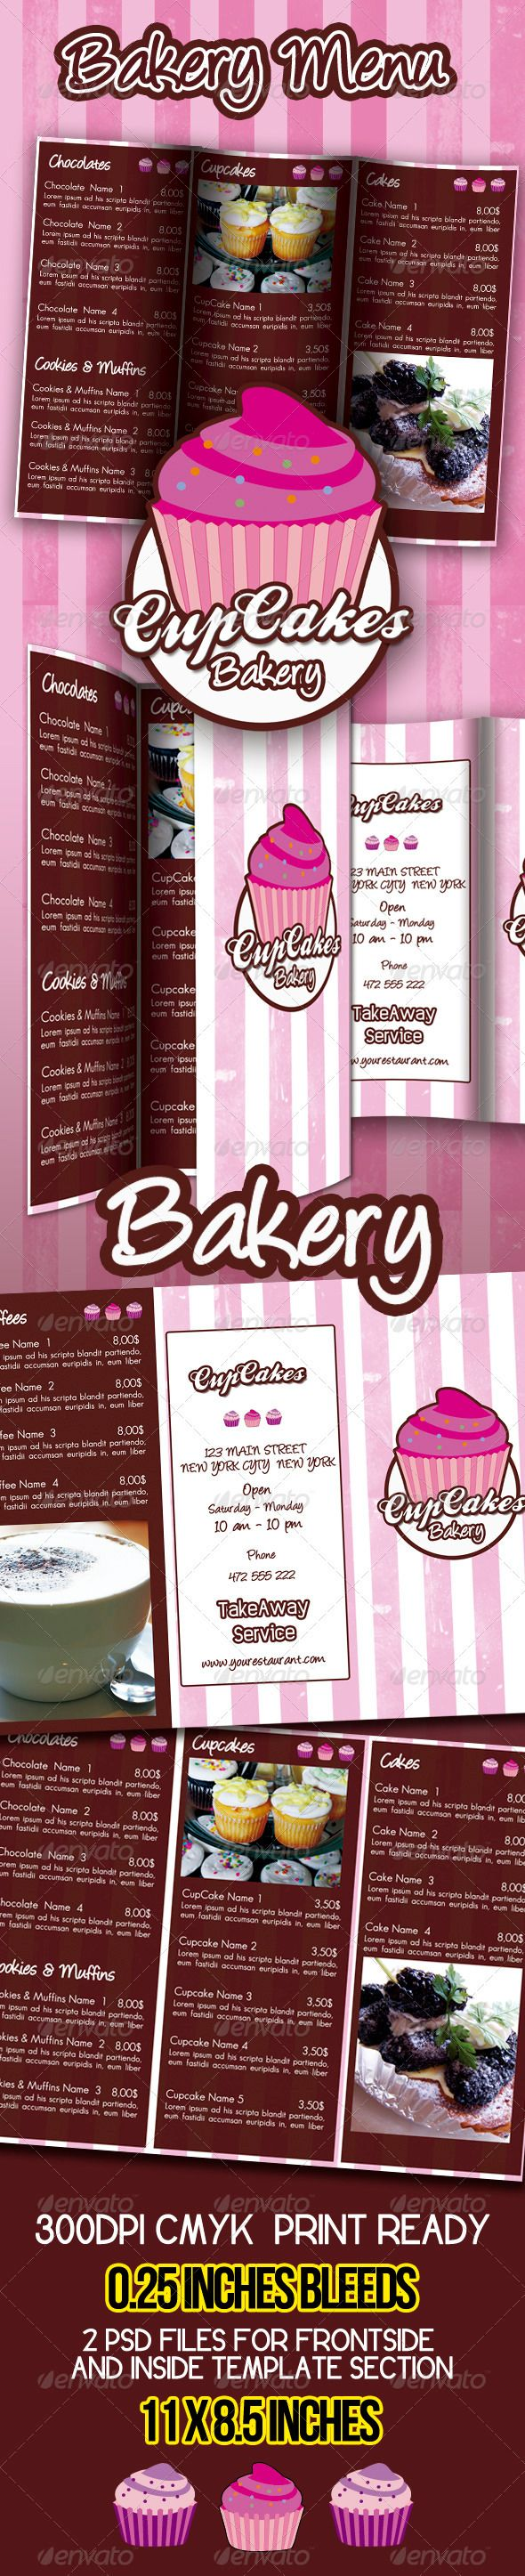 Best 25+ Bakery menu ideas only on Pinterest | Cupcake flavors ...